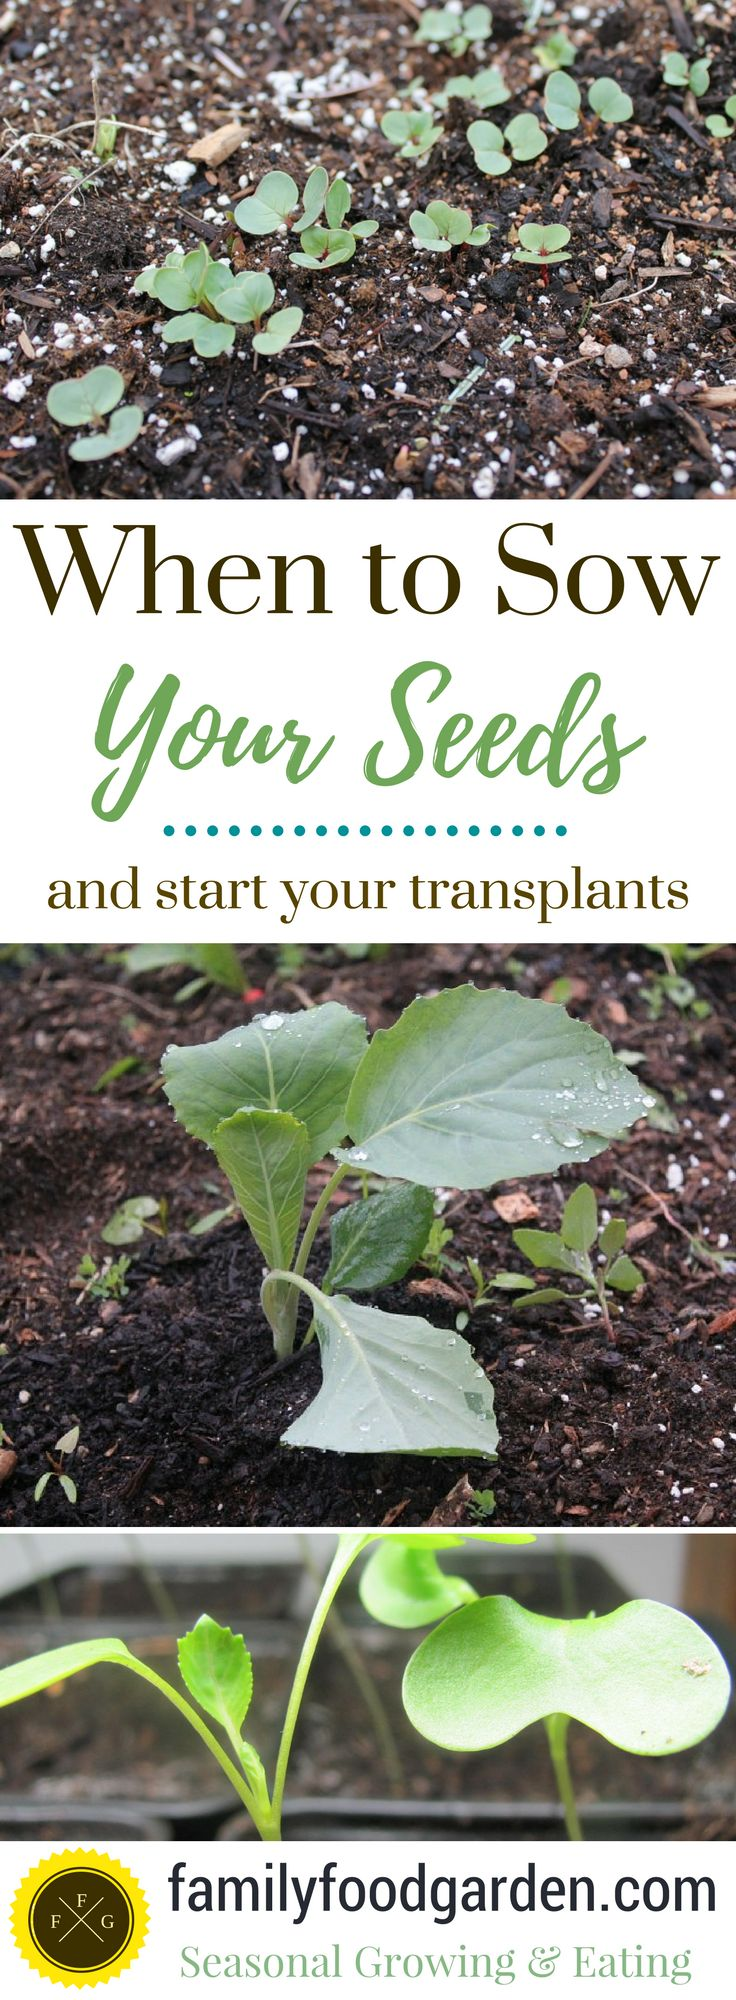 It all starts with the seed. Watching it germinate, watching it grow, and watching that plant become a wonderful harvest. Gardening is amazing!  Here's a rough guideline of when to start your seeds either by direct sowing or if you're growing your own transplants. It's always good to double chec